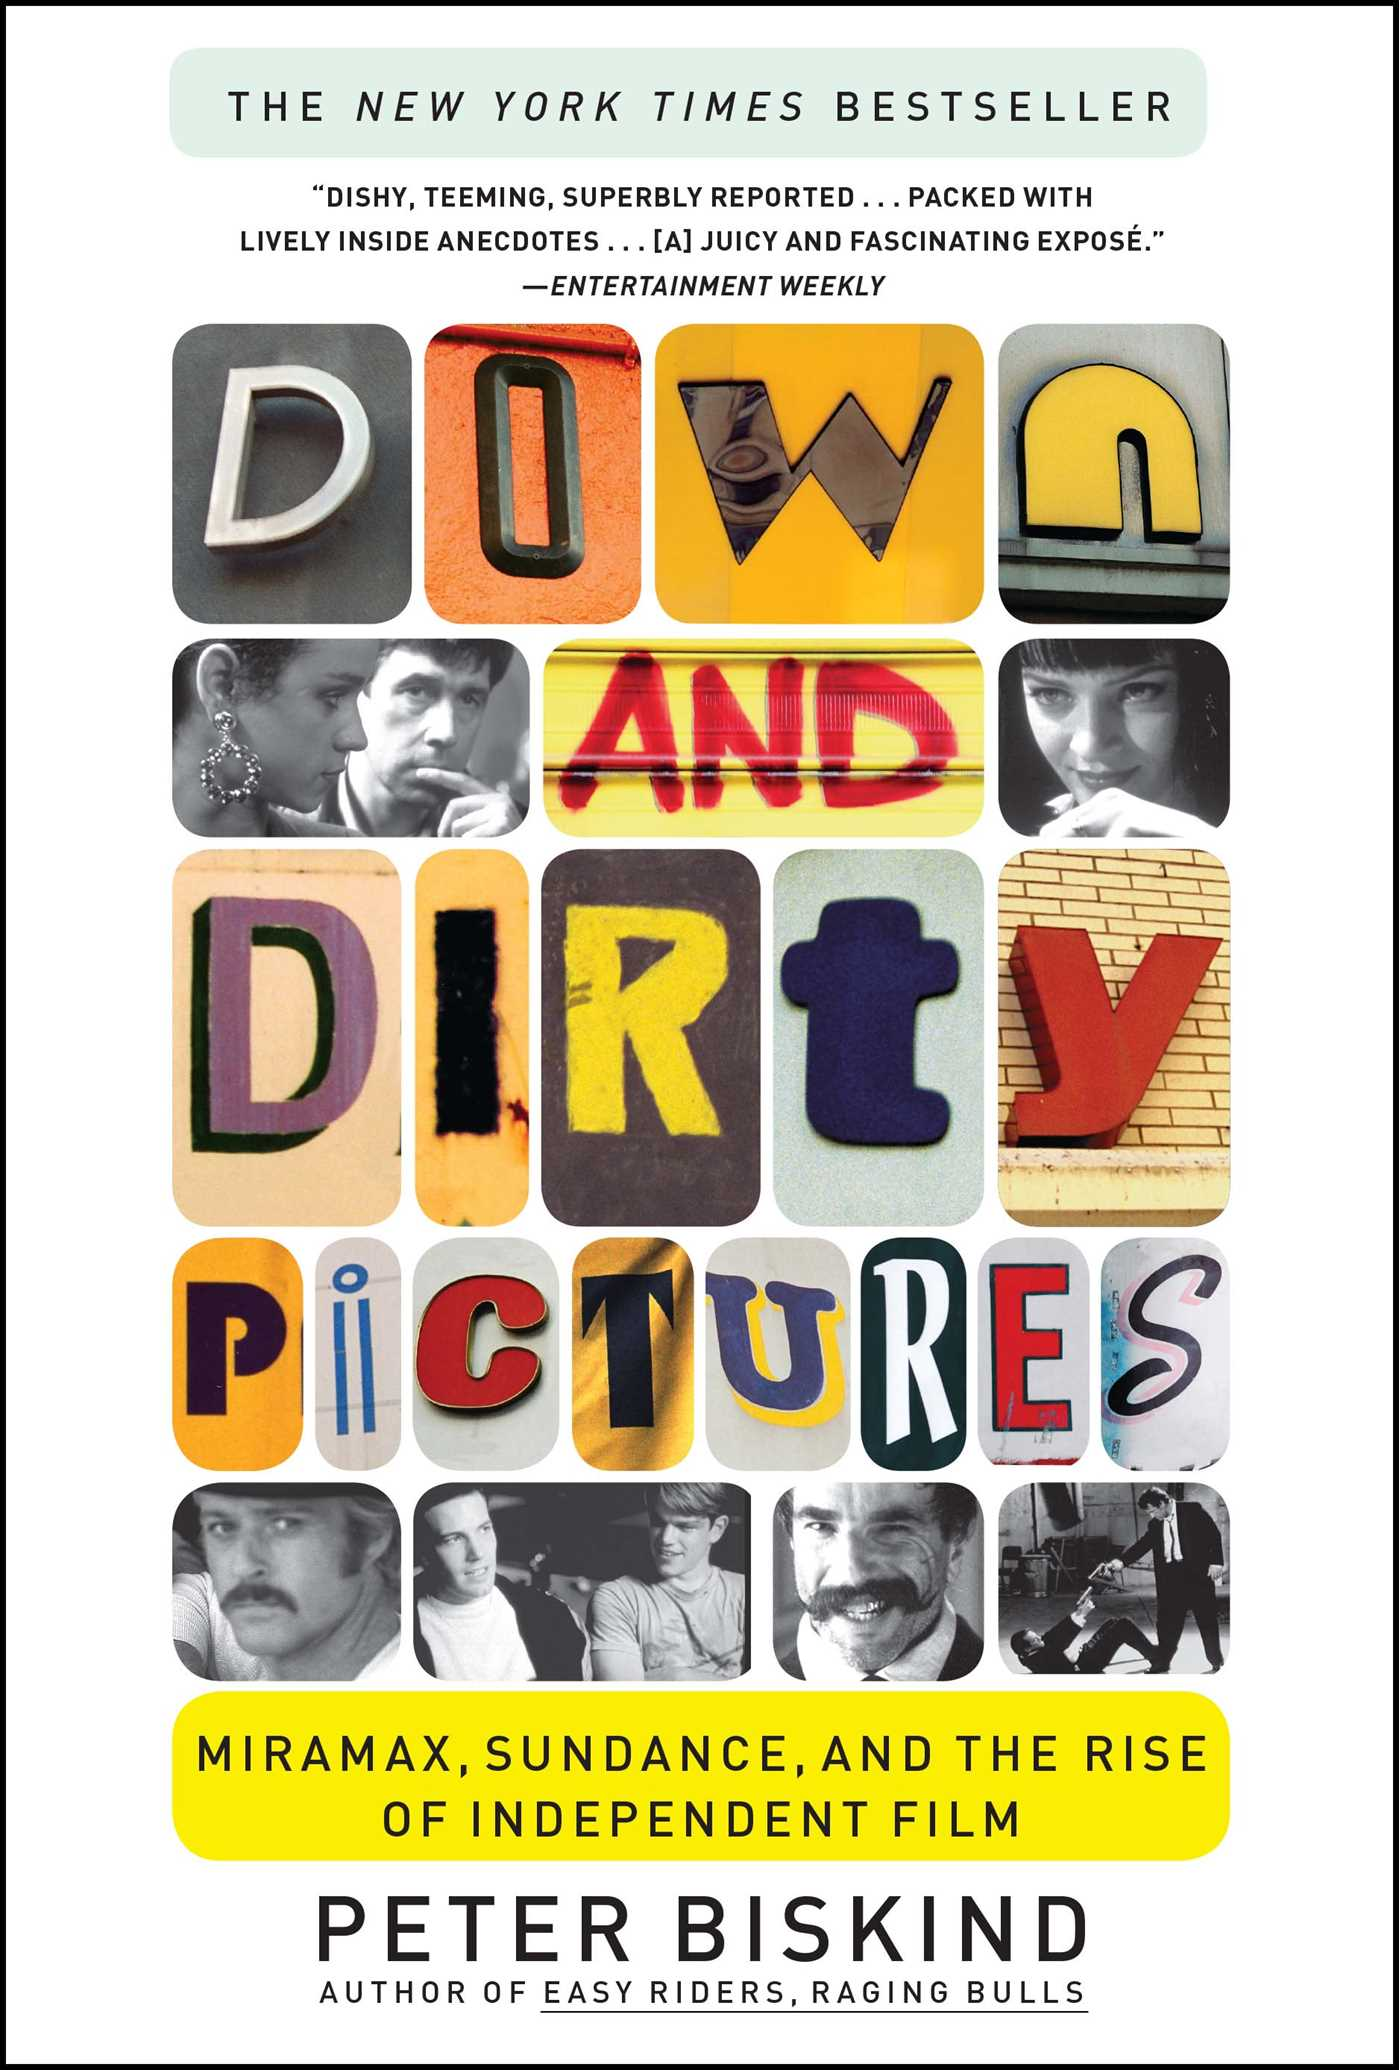 Down and dirty pictures 9780684862583 hr